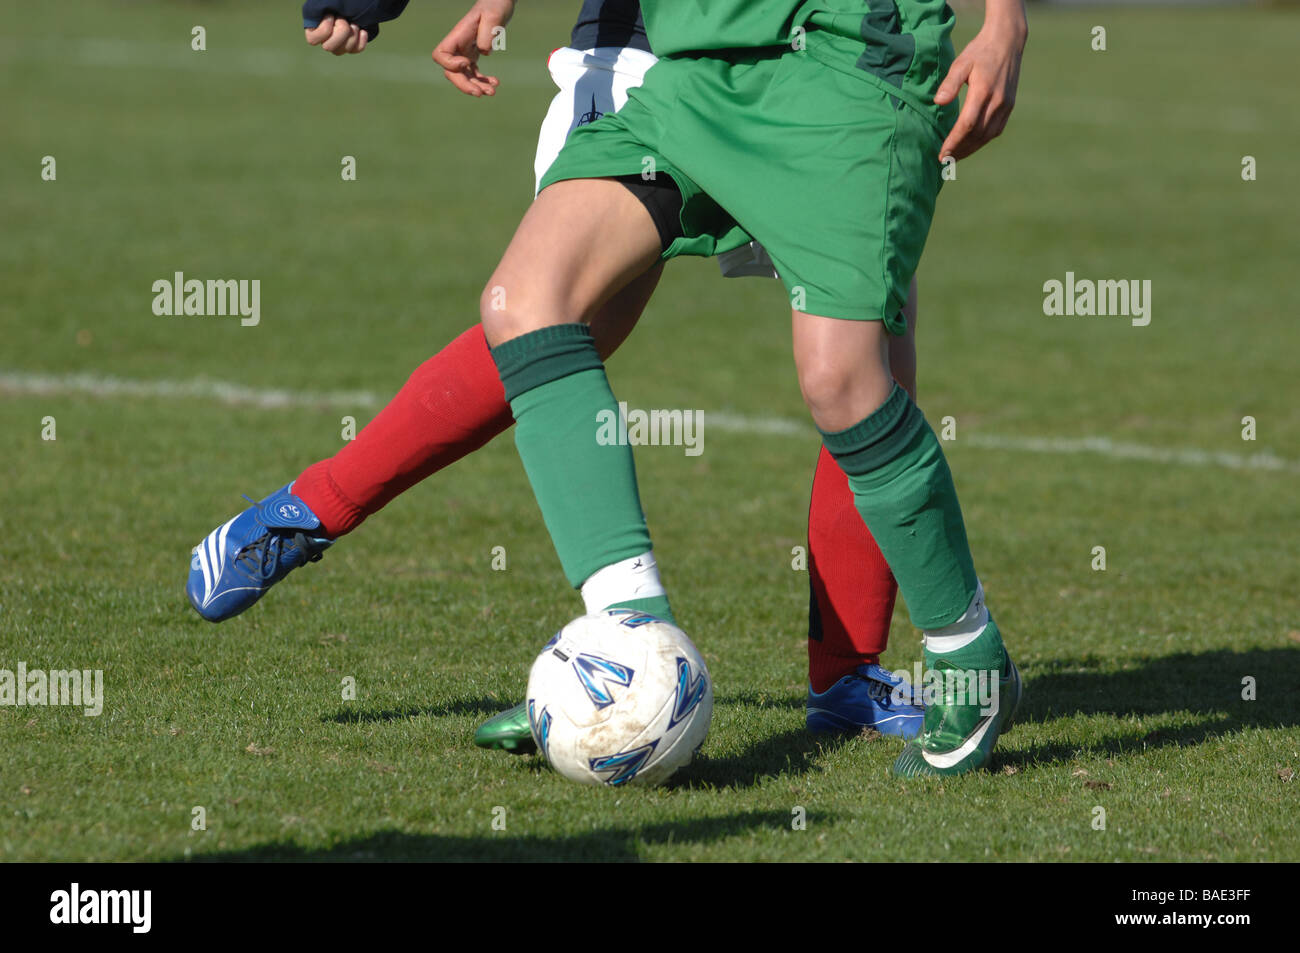 Detail of two footballers legs and feet with football. - Stock Image